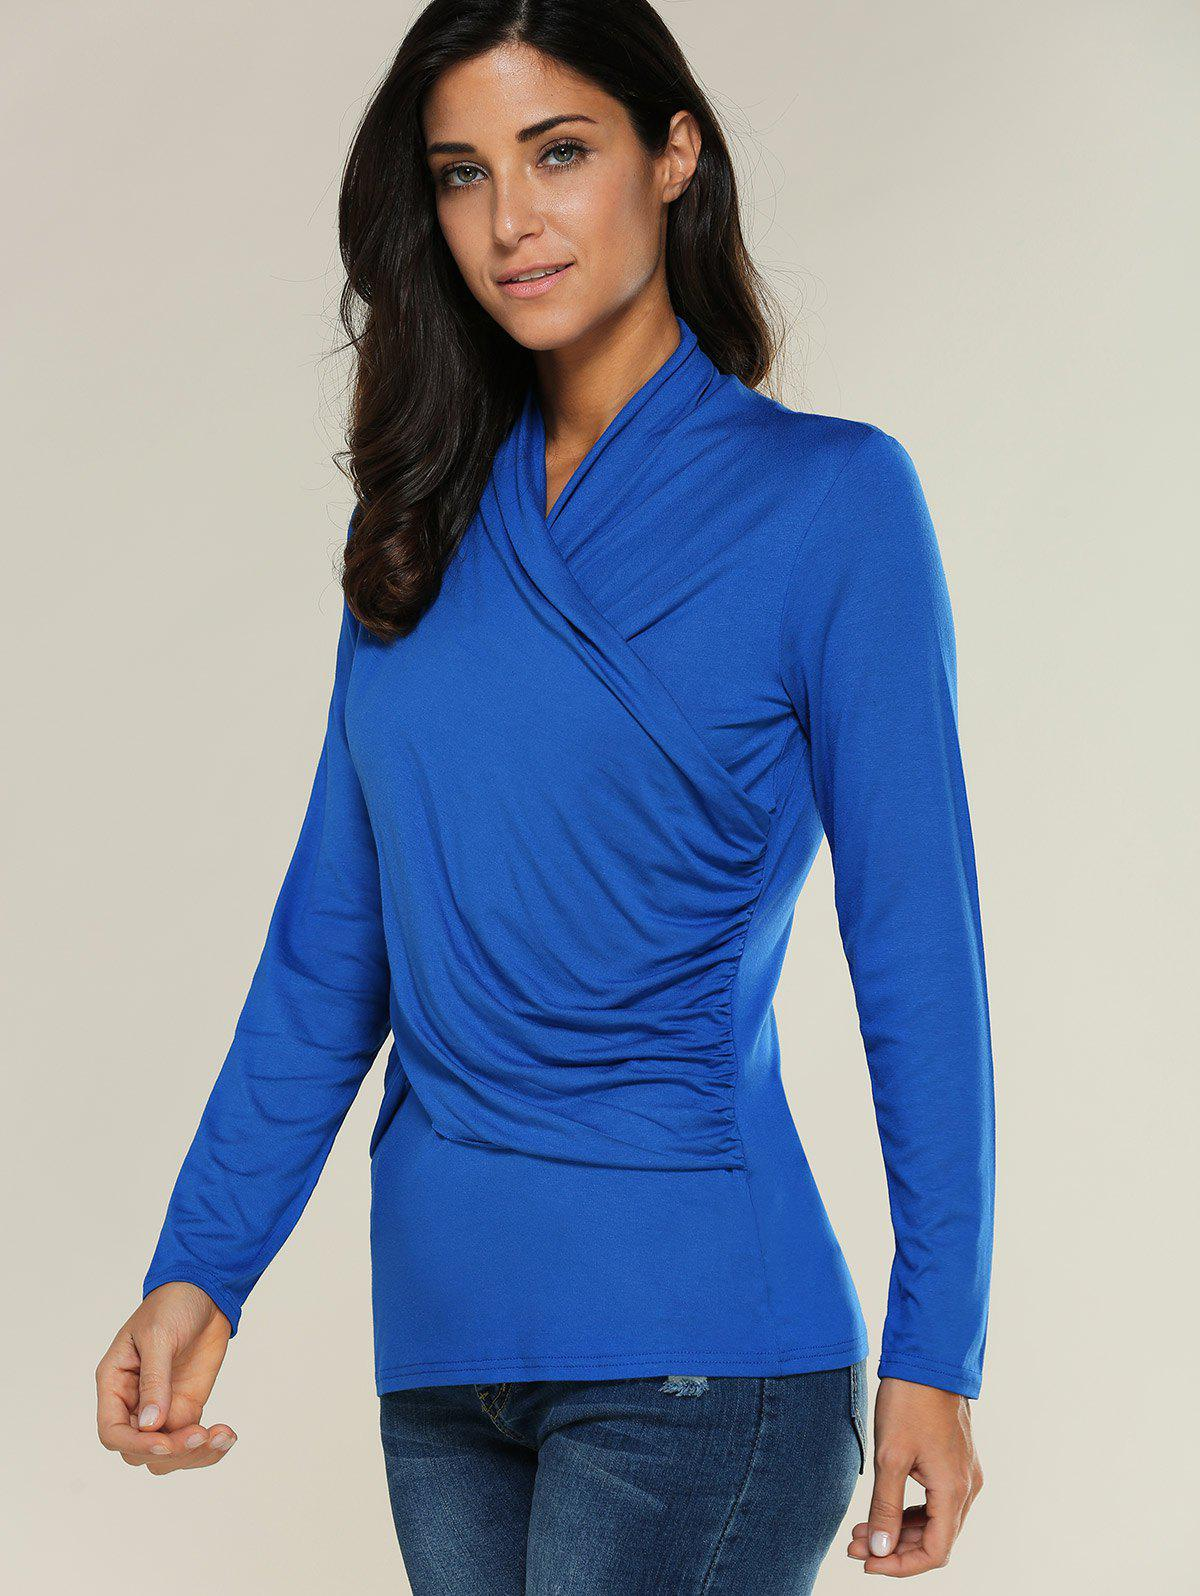 Ruffled Cross Wrap T Shirt - BLUE L